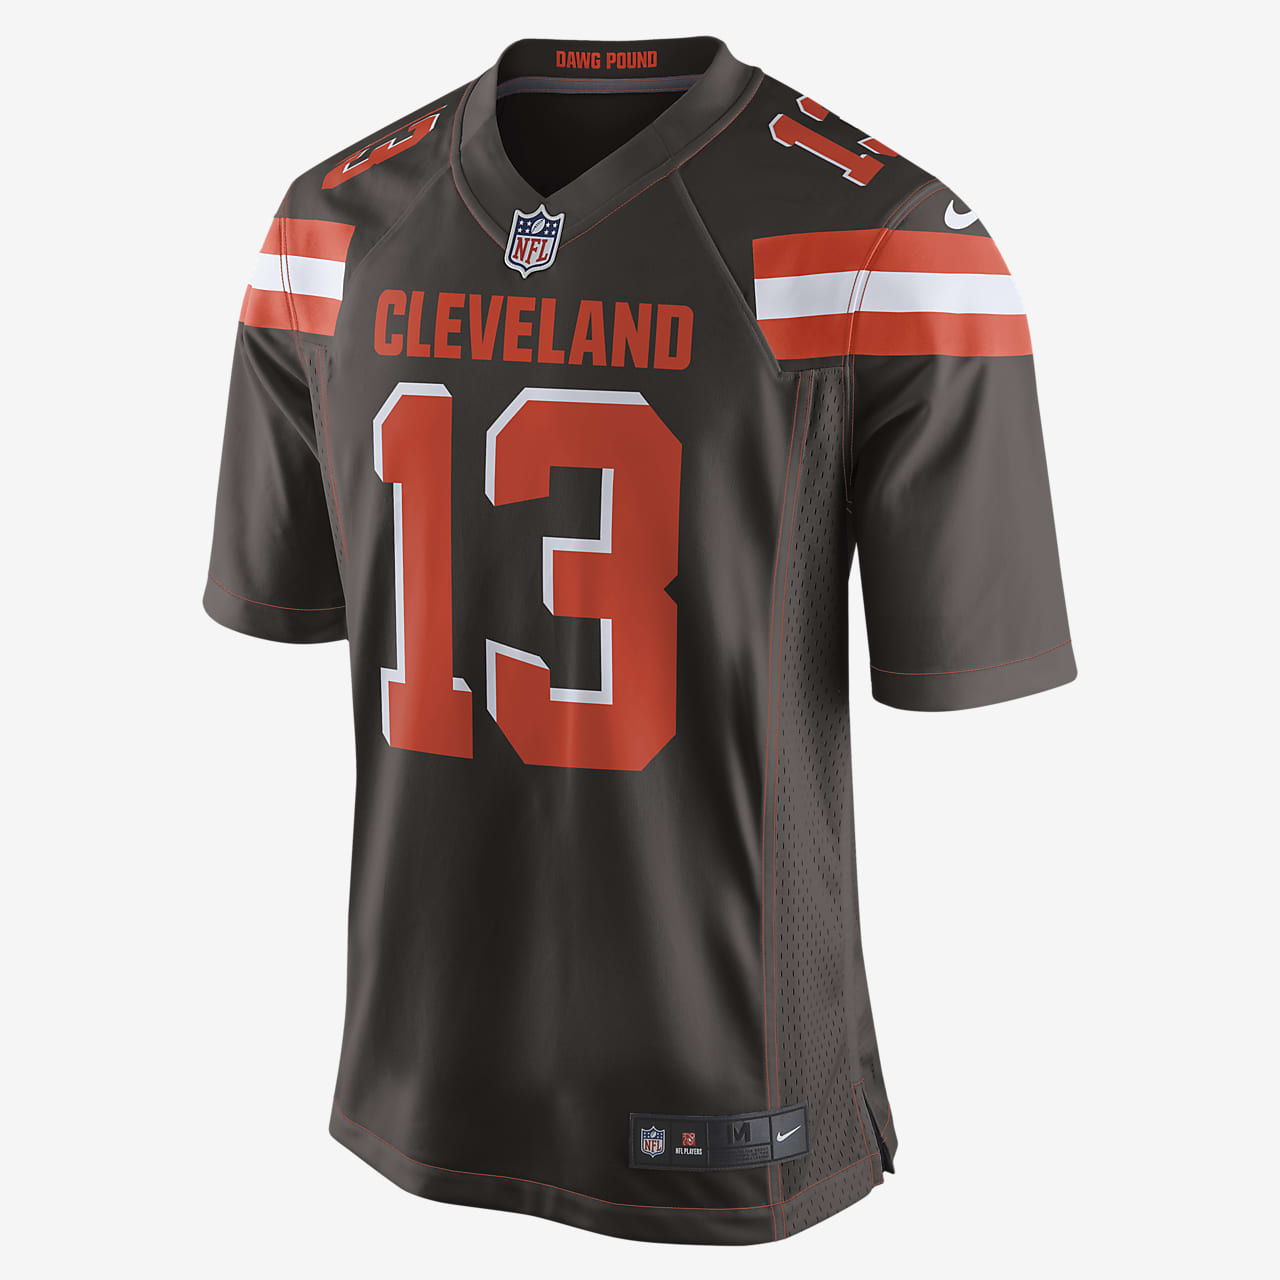 NFL Cleveland Browns (Odell Beckham Jr.) Men's Game American Football Jersey